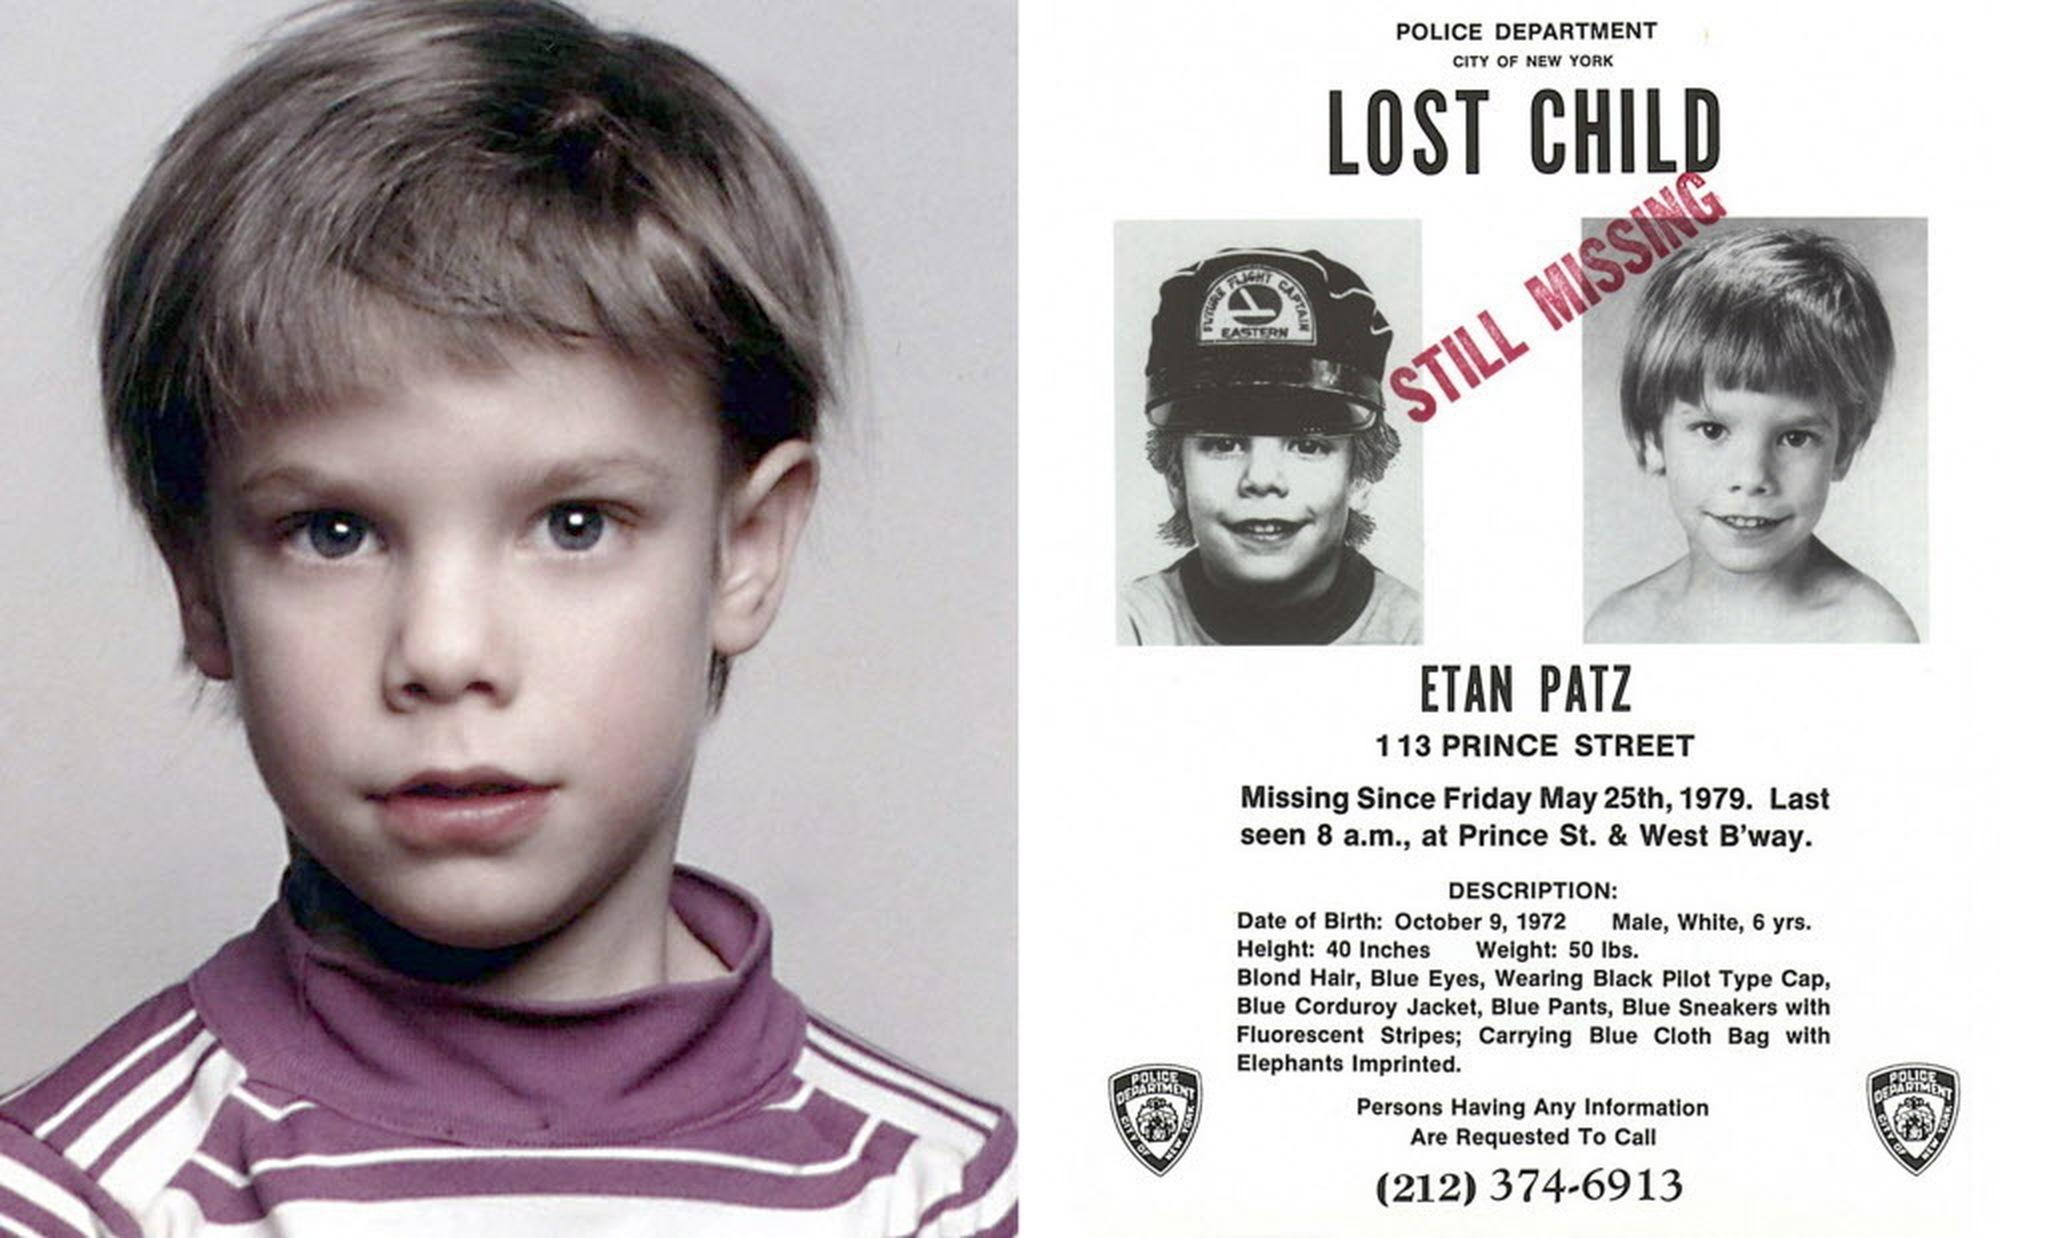 Arrest Made in the Etan Patz Missing Child Case 33 Years Later forecasting